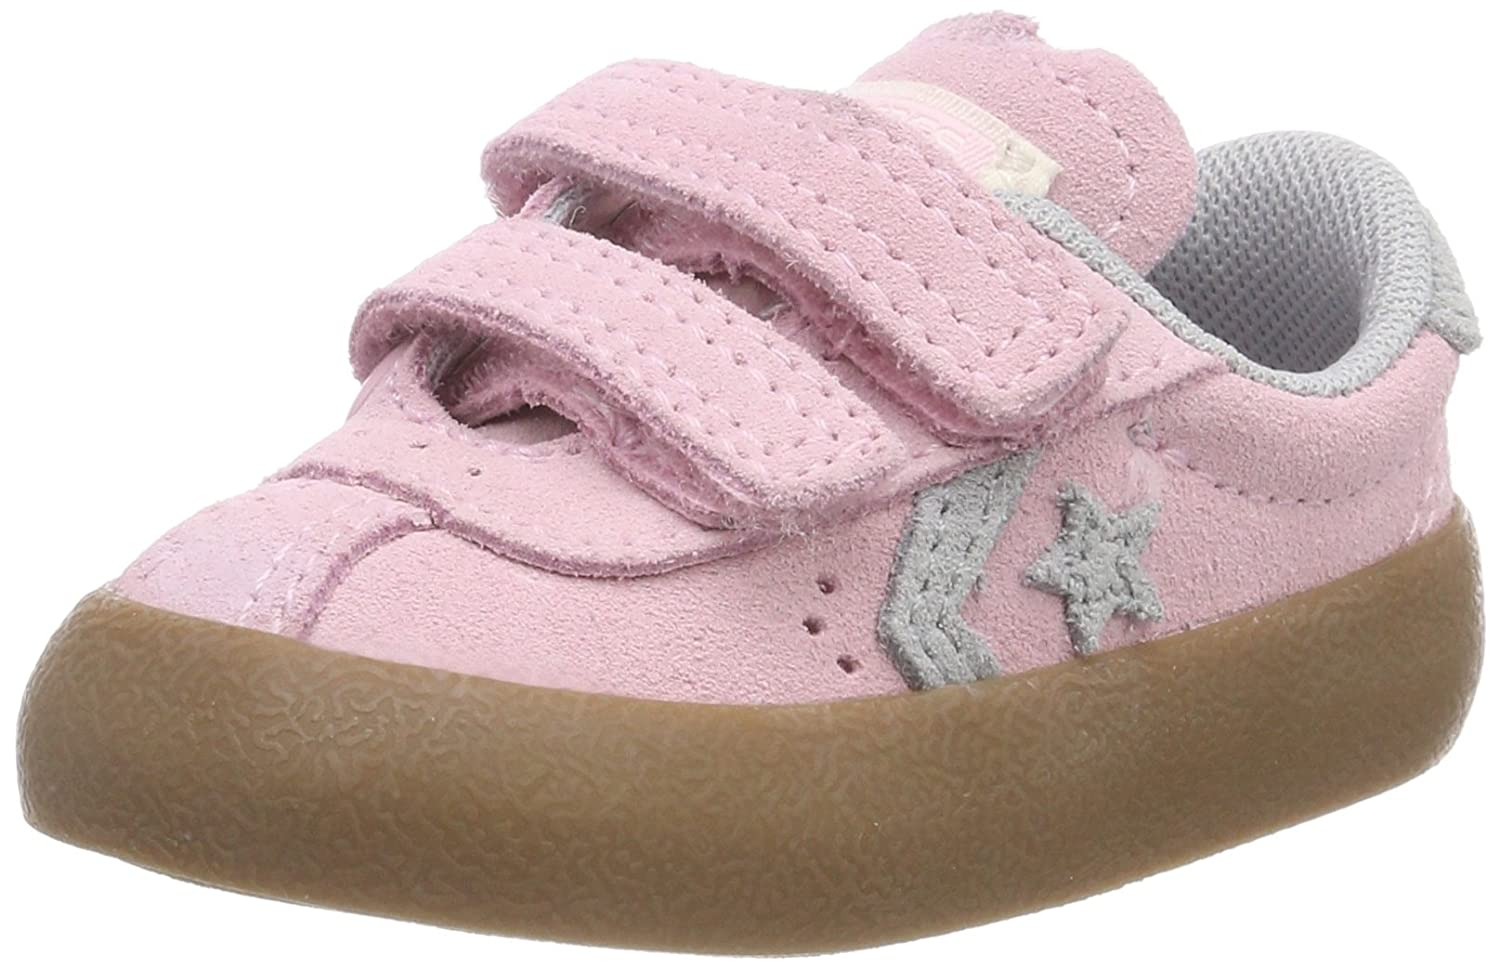 Converse Breakpoint 2v Ox Cherry Blossom, Zapatillas Unisex Niñ os Zapatillas Unisex Niños 760057C